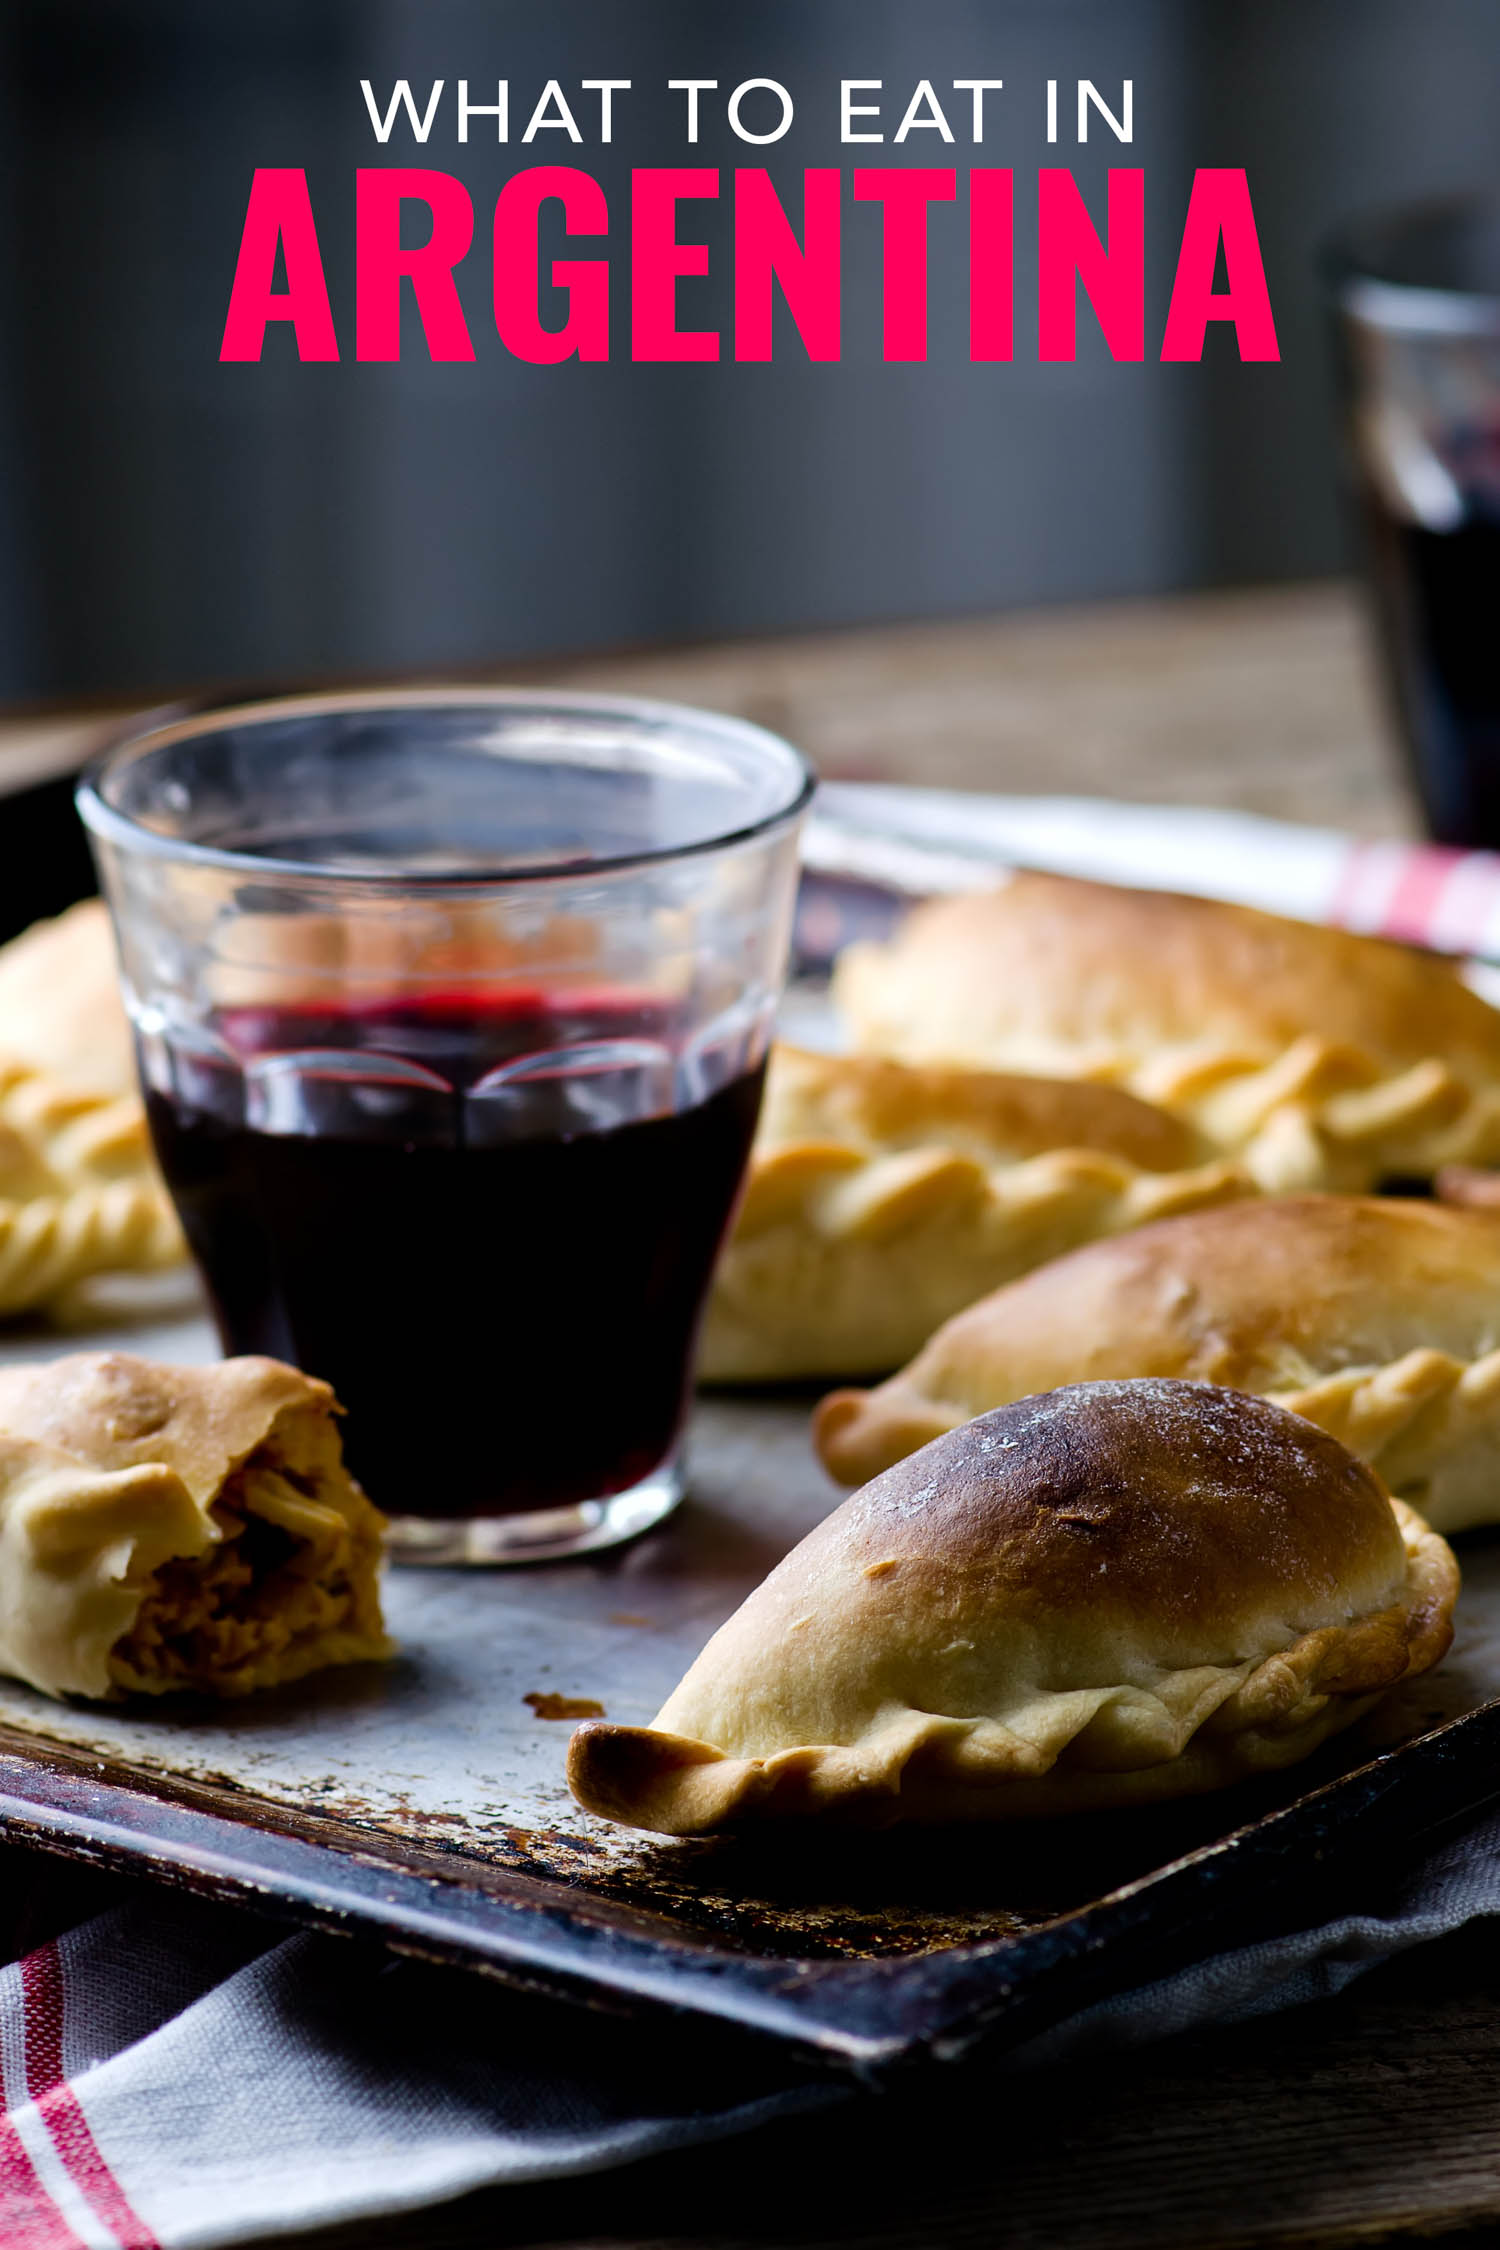 Argentinian food includes red wine and empanadas.